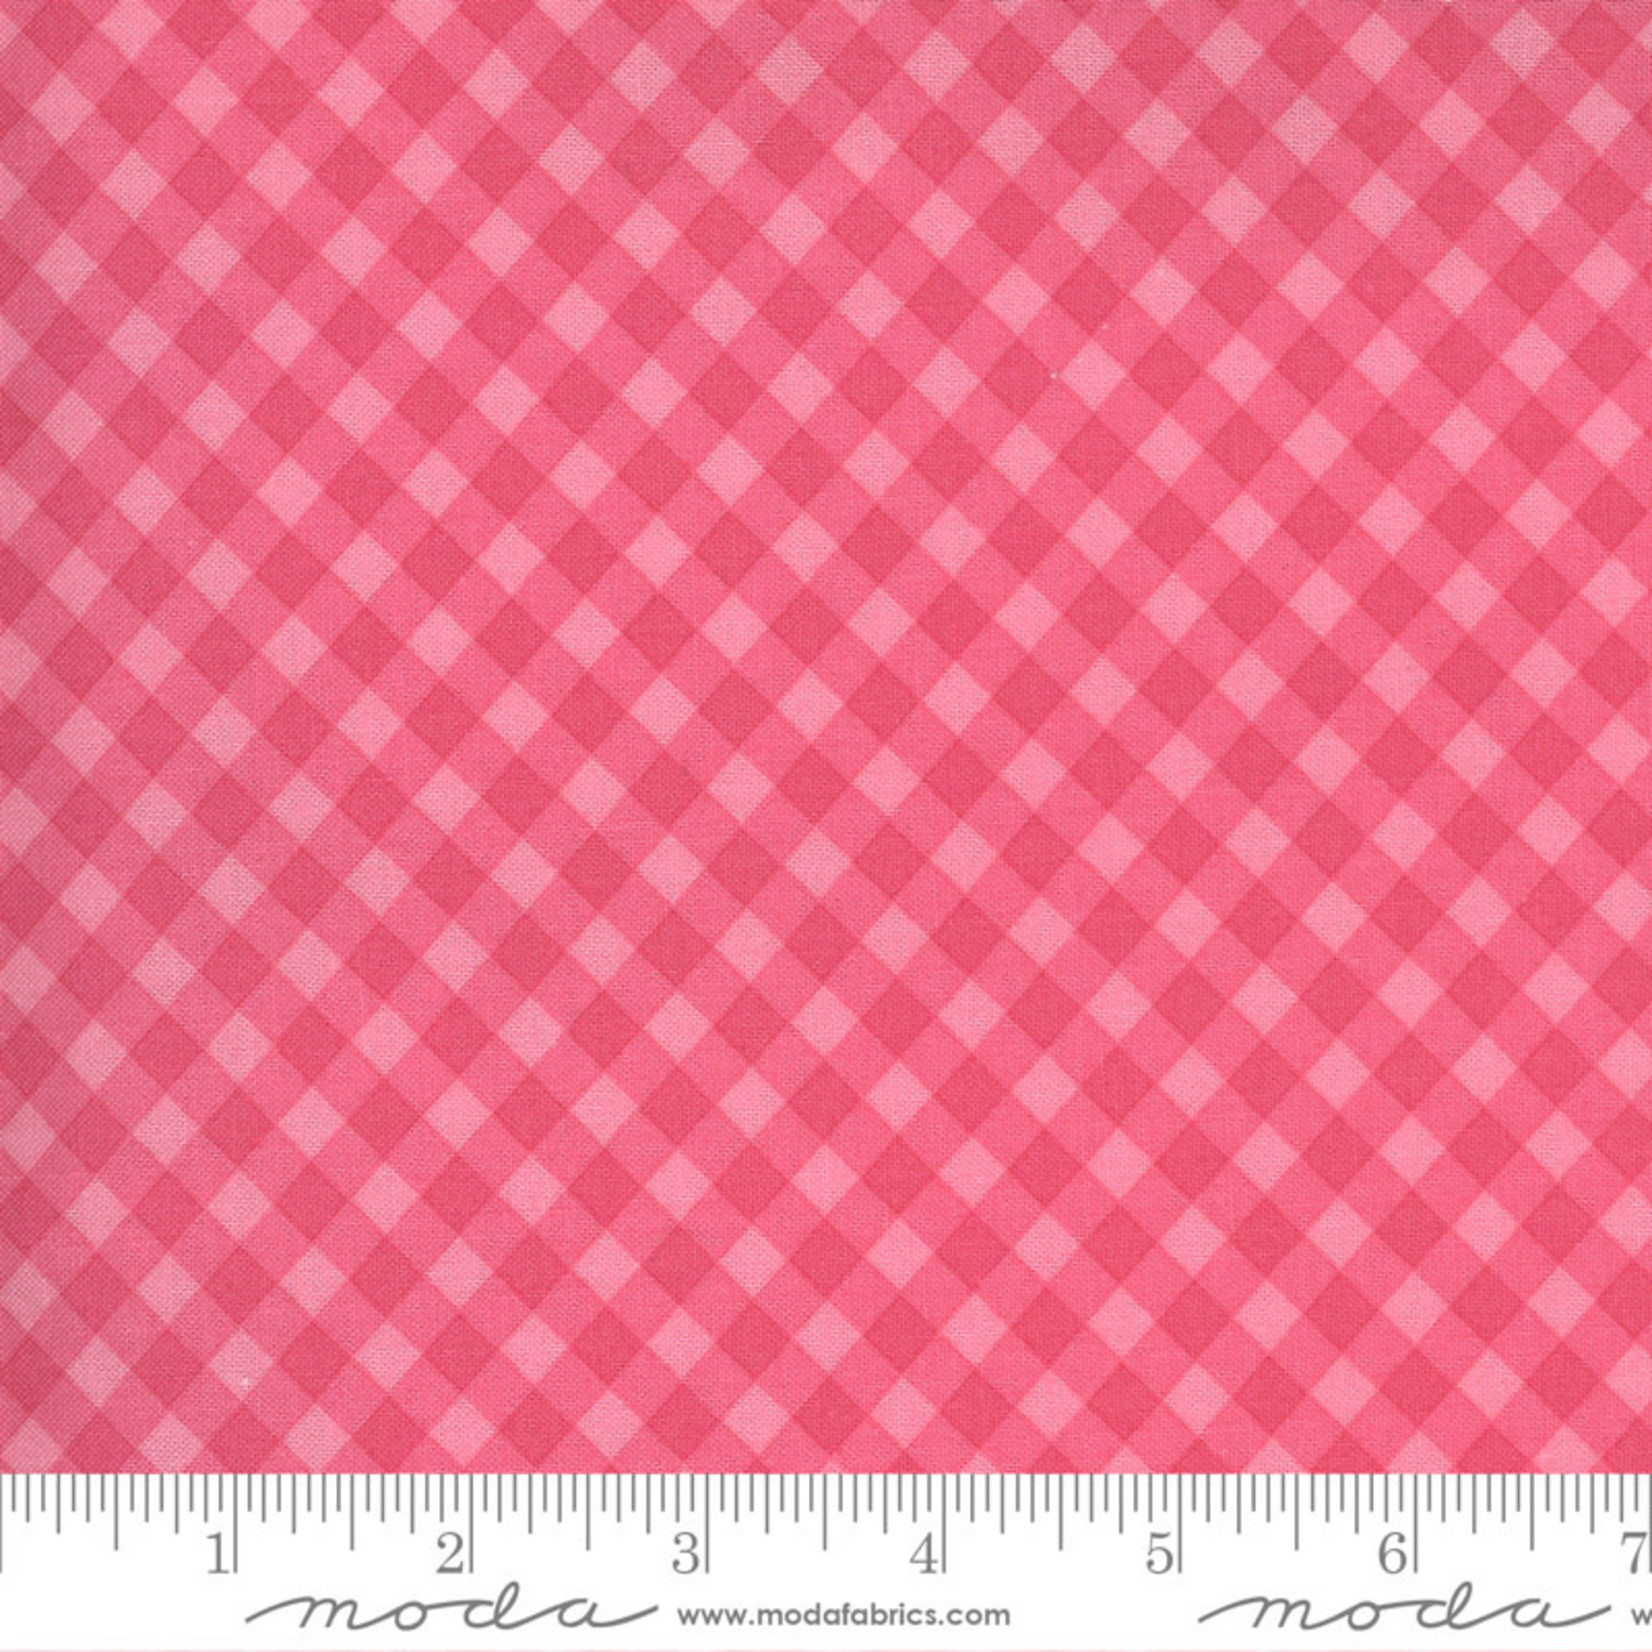 Sweetwater Spring Chicken, Gingham, Pink 55523-12 $0.20 per cm or $20/m